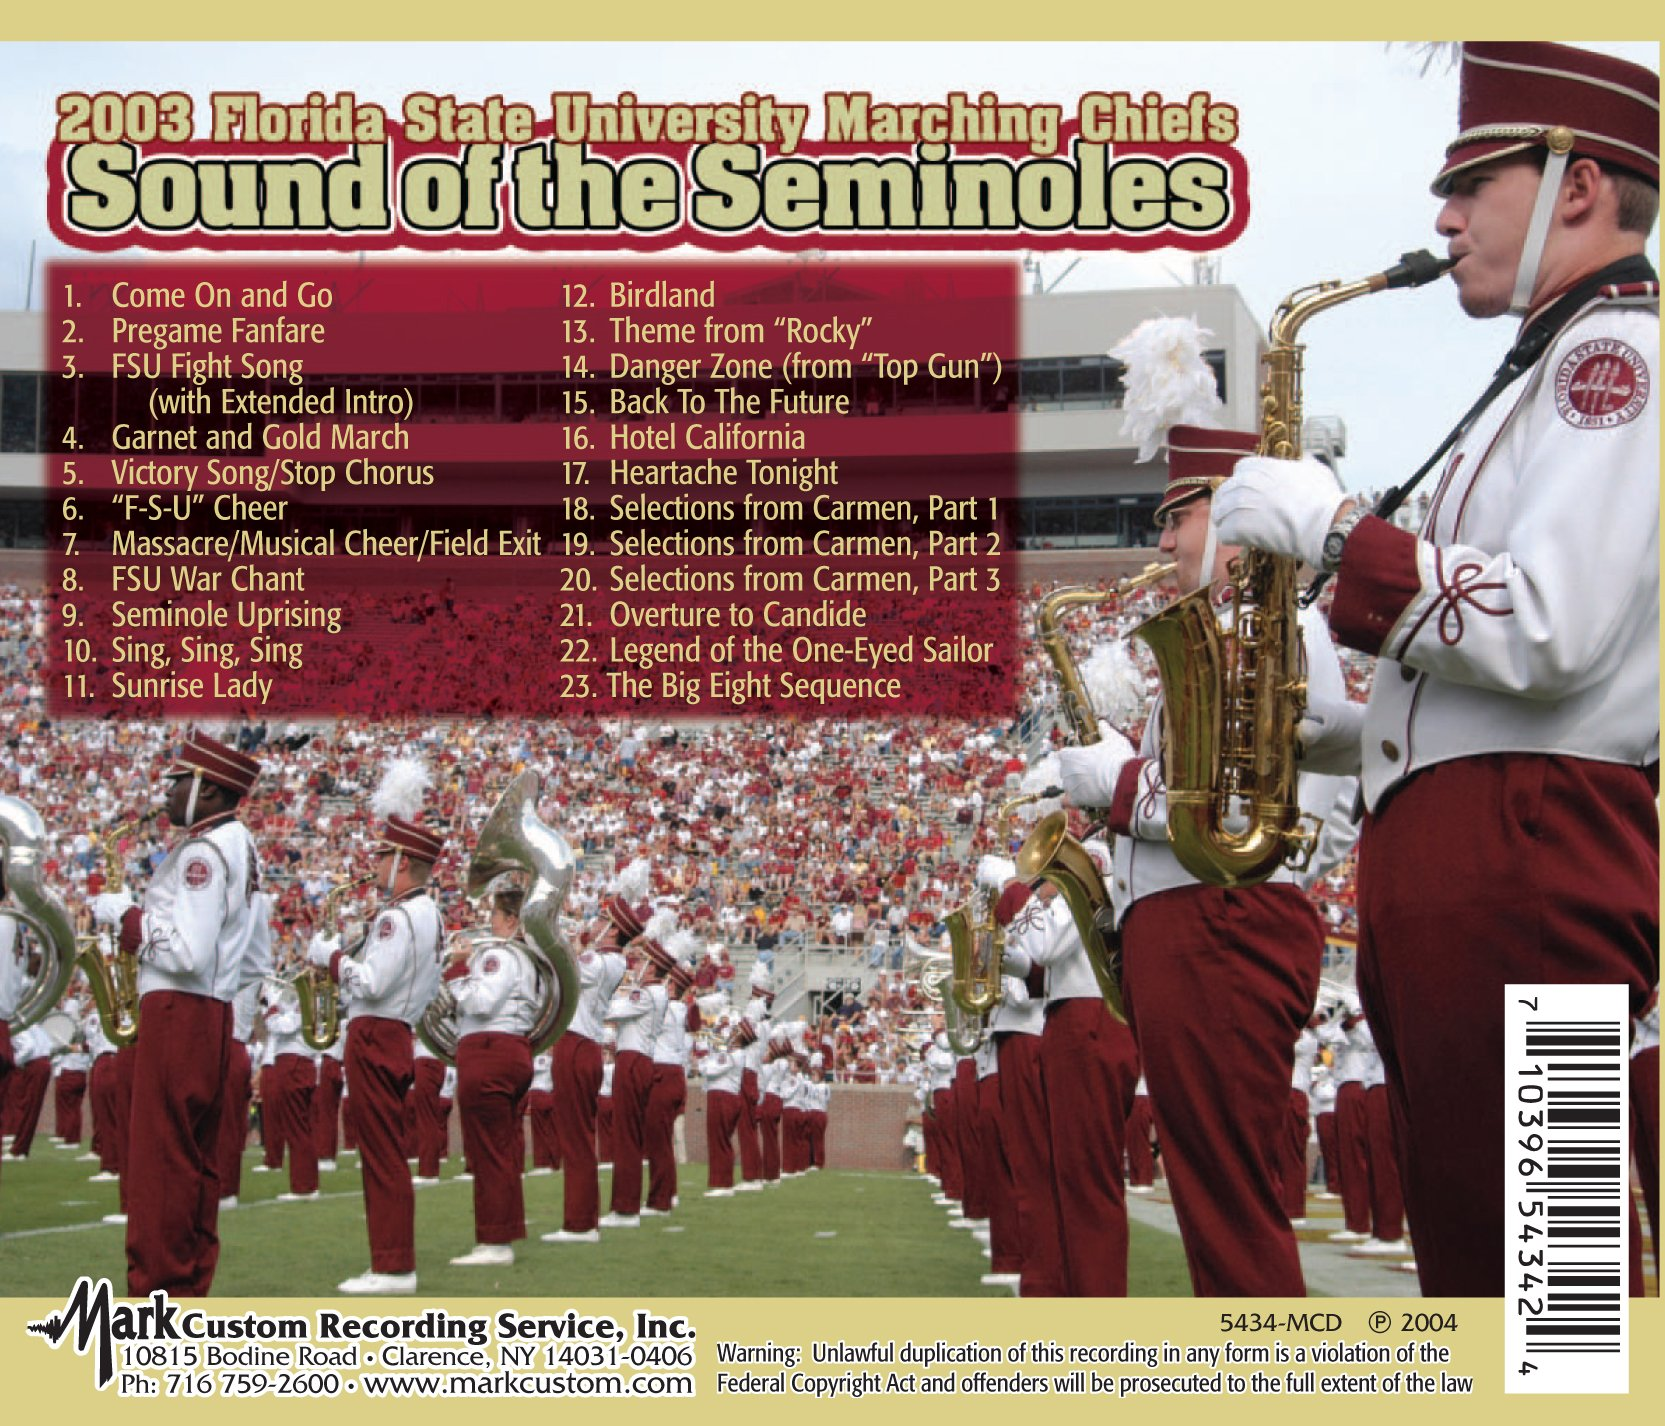 Sounds of the Seminoles 2003 by Football Fanatics